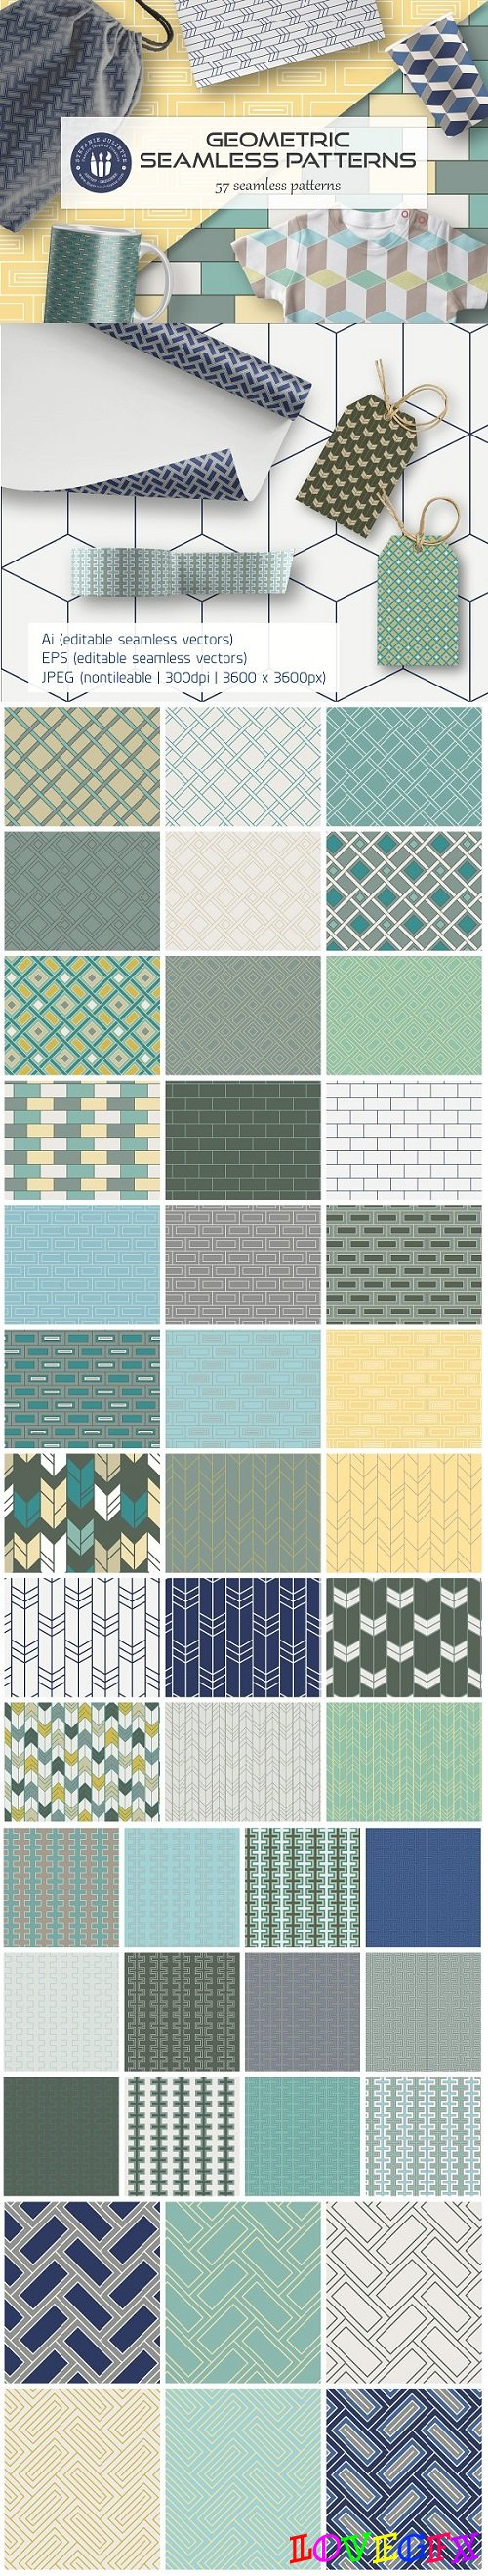 Seamless Geometric Patterns - 2295836